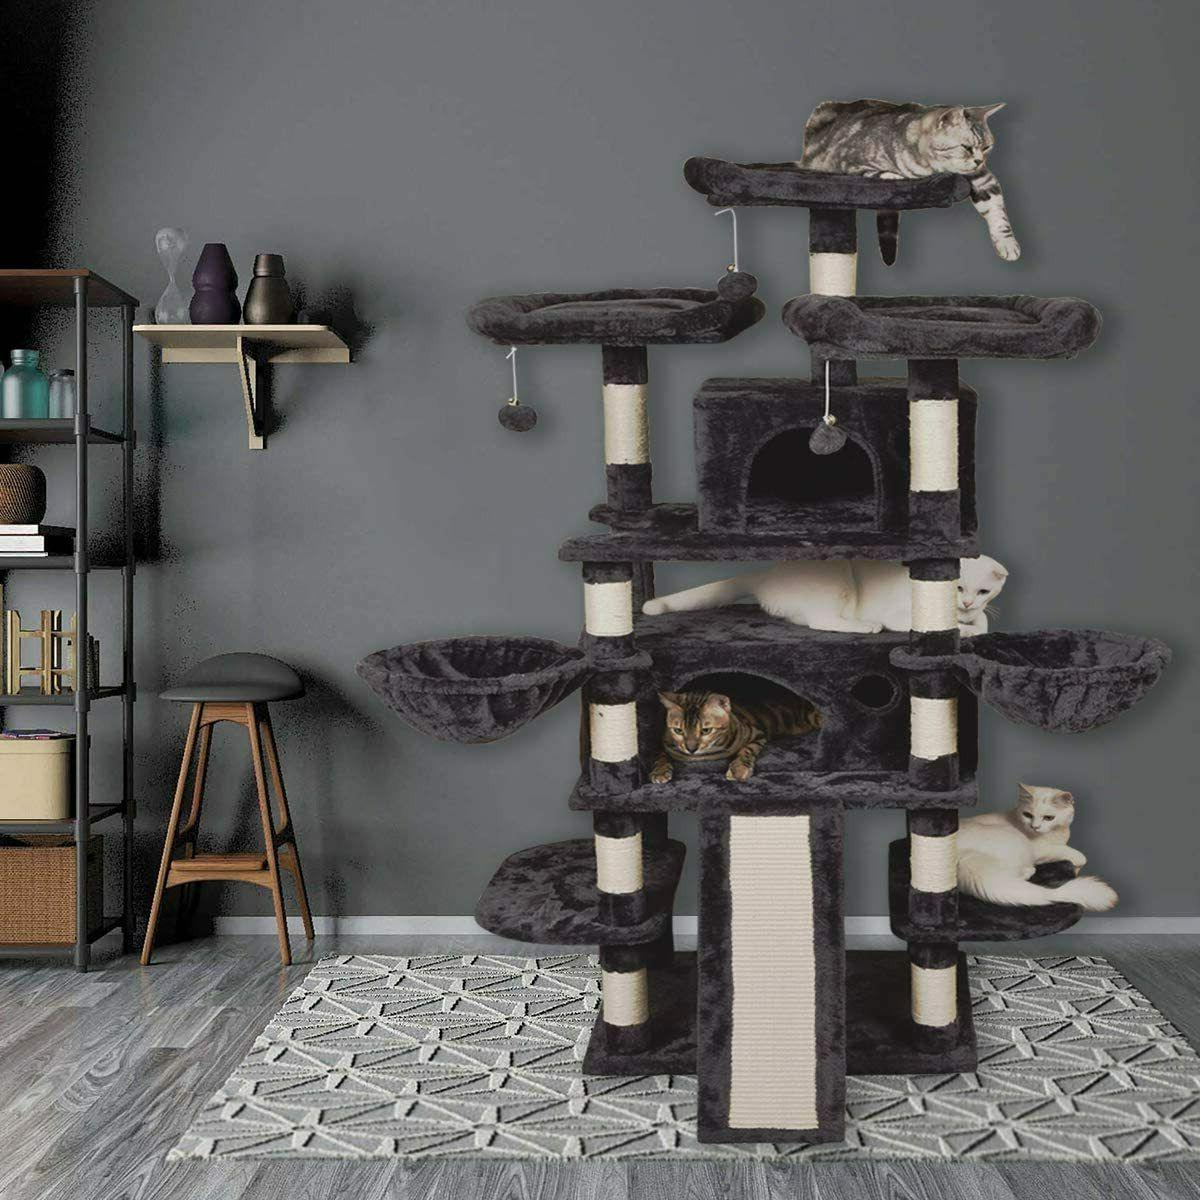 68 Level Cat X Large Size Tower with Stabl